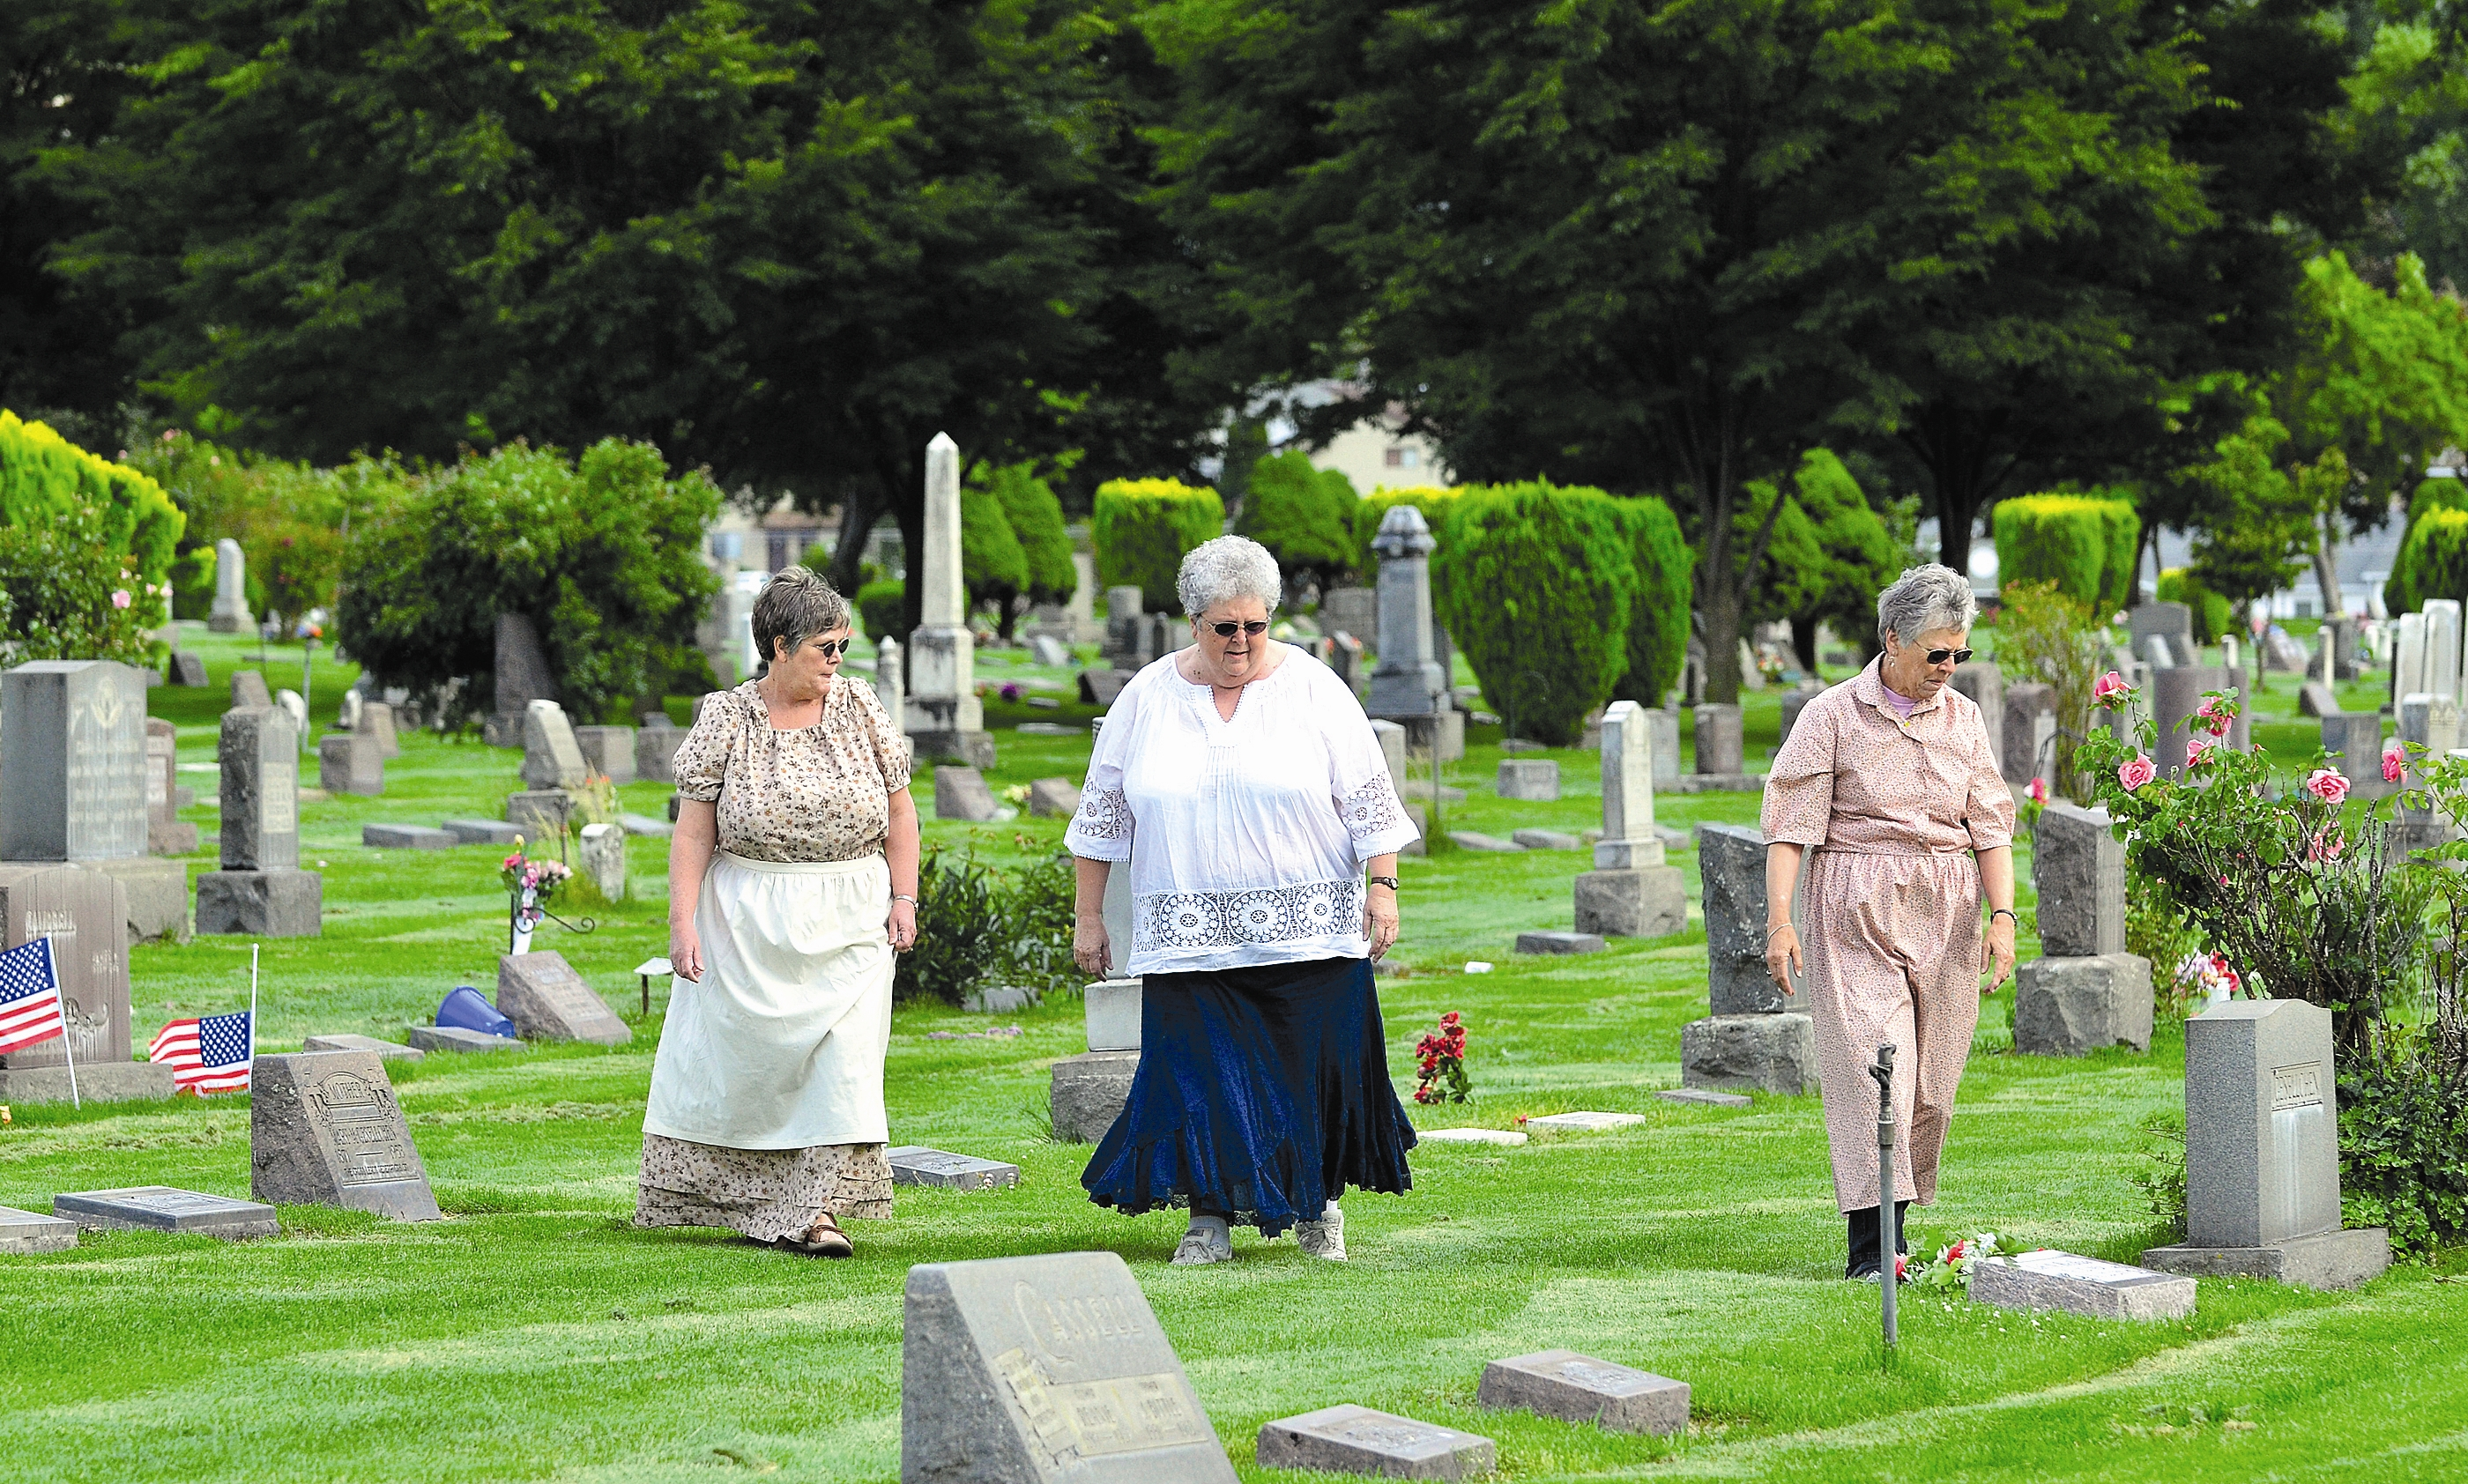 Exhuming settlers' stories: Genealogy society plays host to its second Walking with Ancestors at Lewiston cemetery